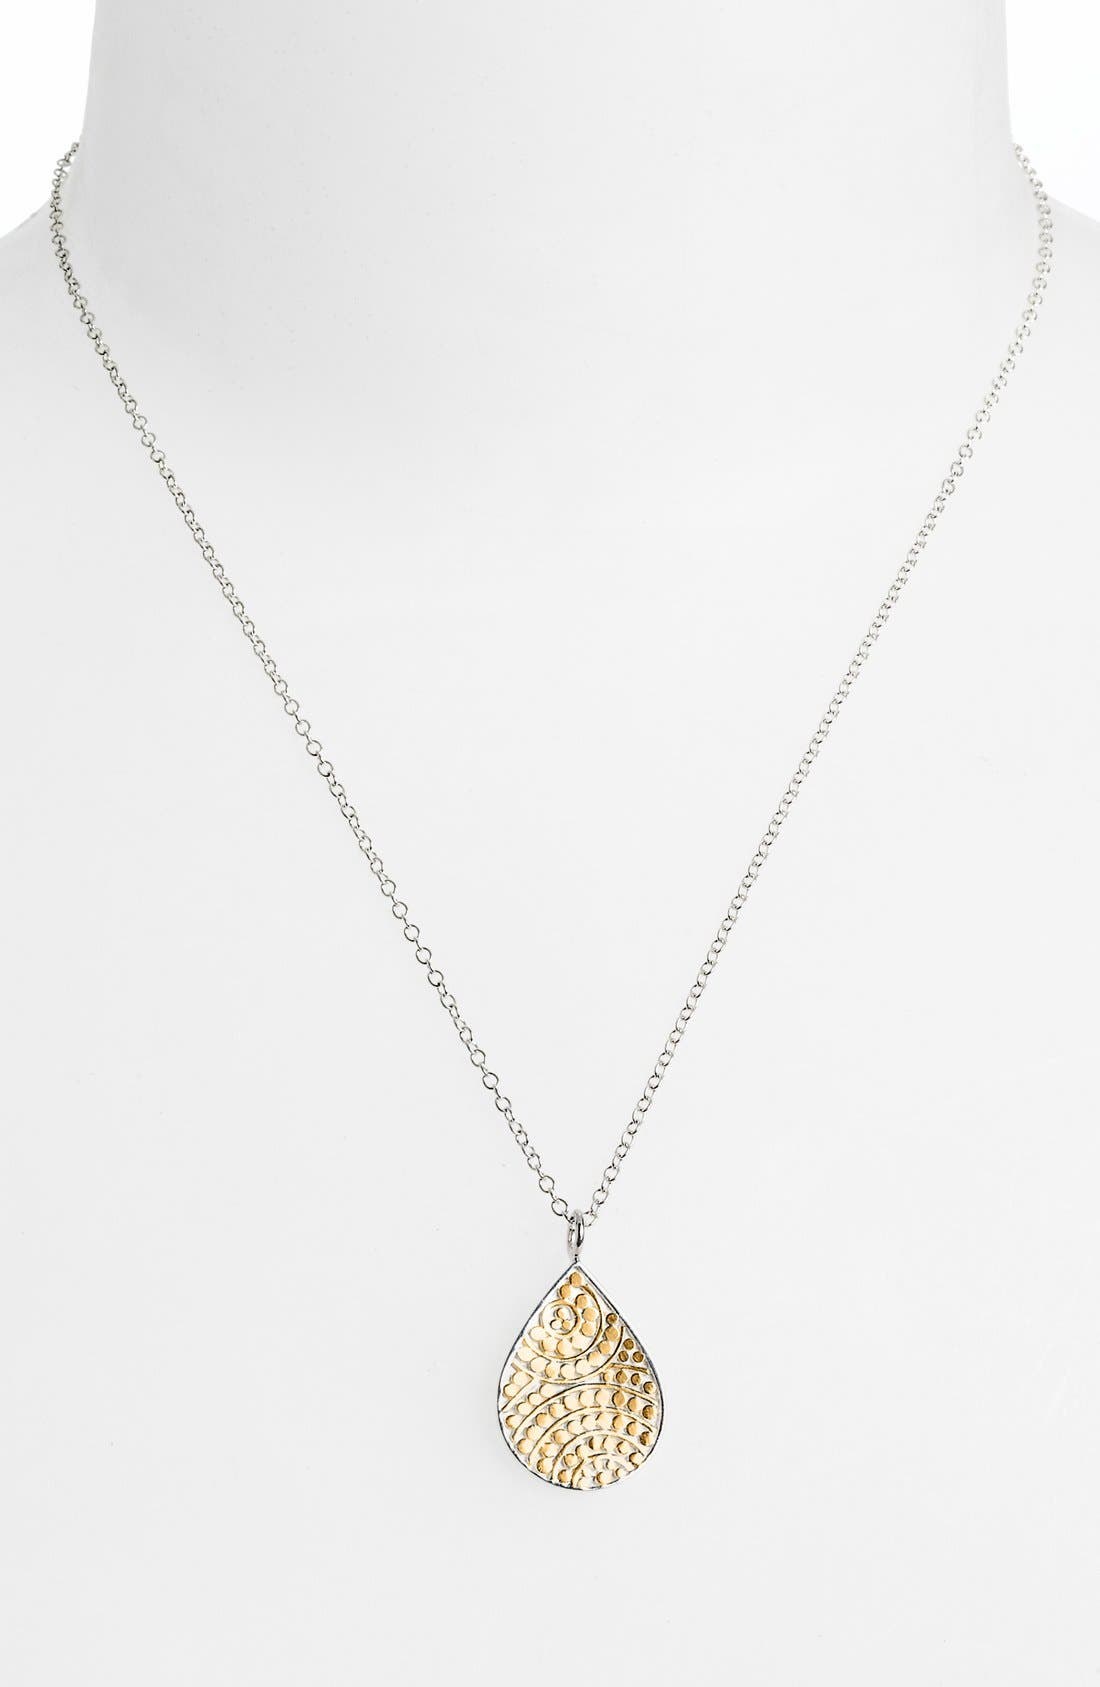 Alternate Image 1 Selected - Anna Beck 'Rajua' Small Reversible Teardrop Necklace